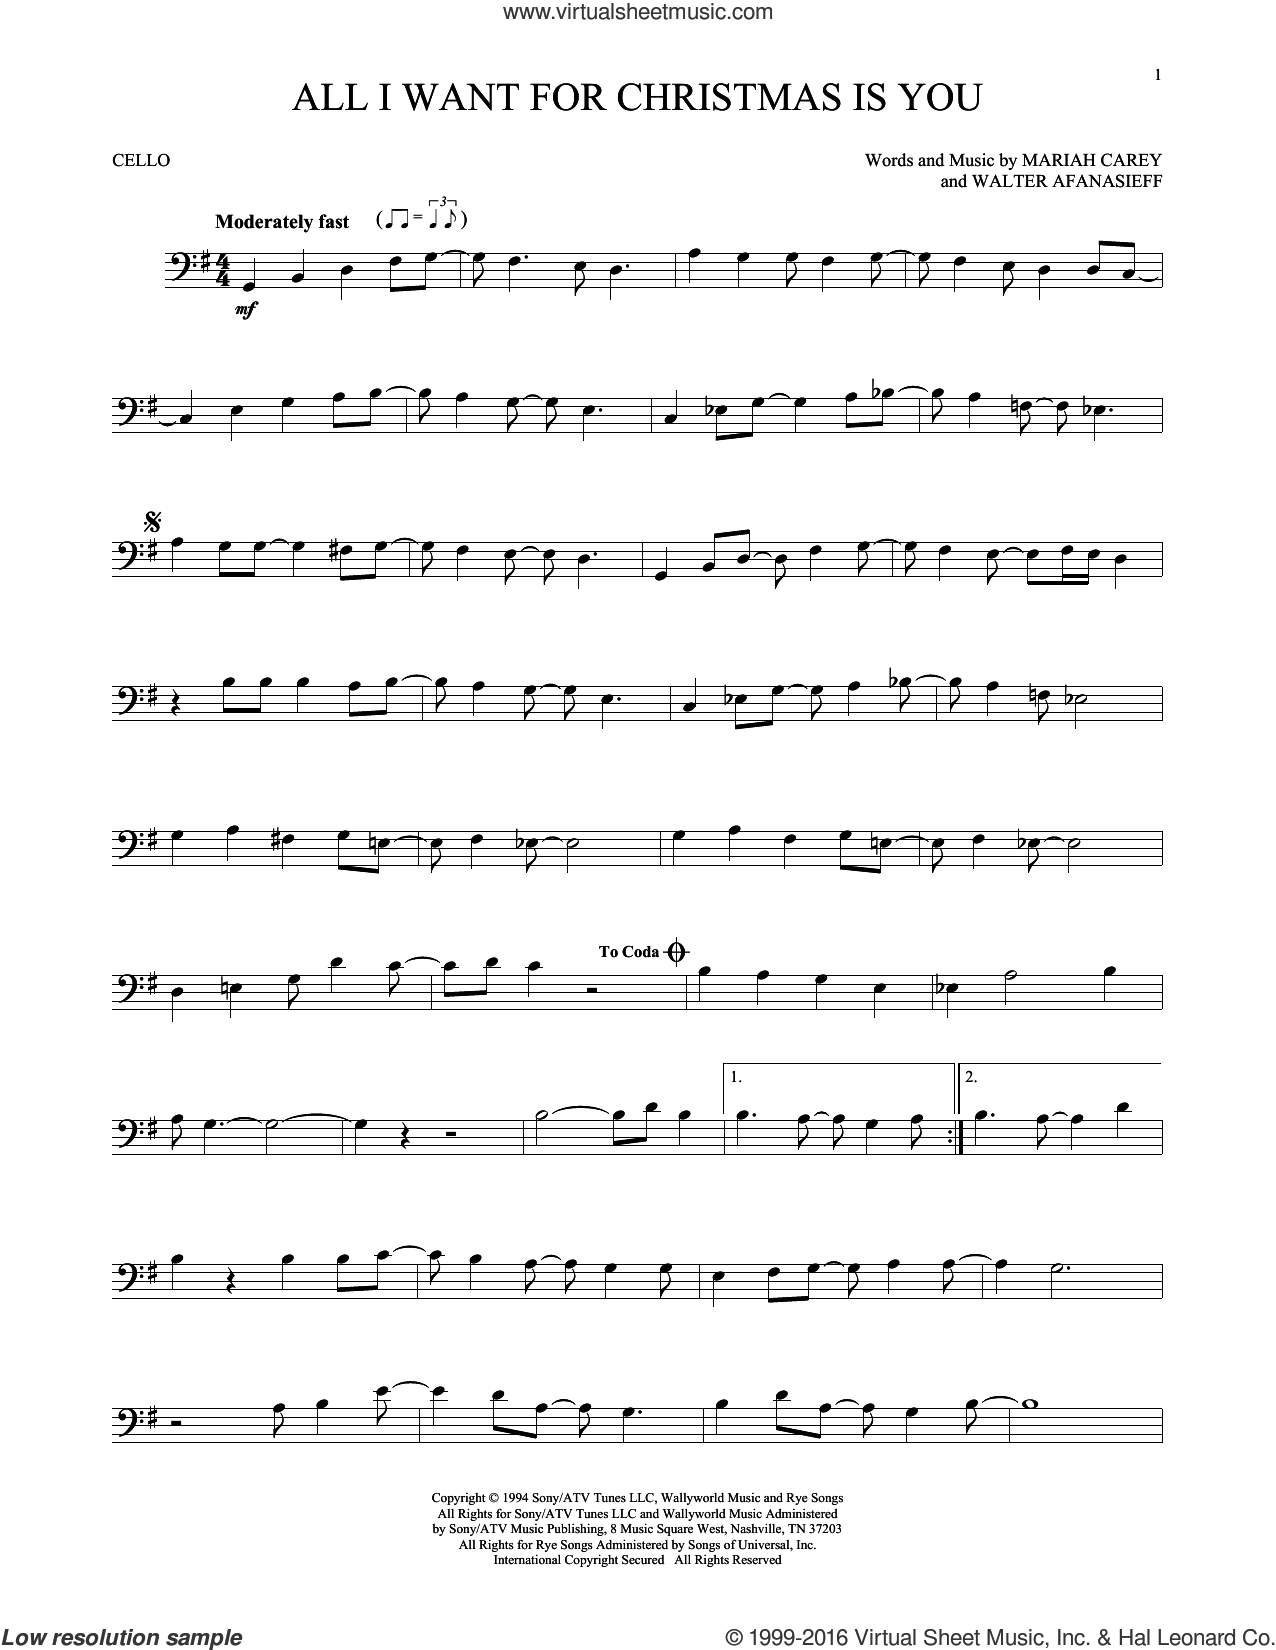 All I Want For Christmas Is You sheet music for cello solo by Walter Afanasieff and Mariah Carey. Score Image Preview.